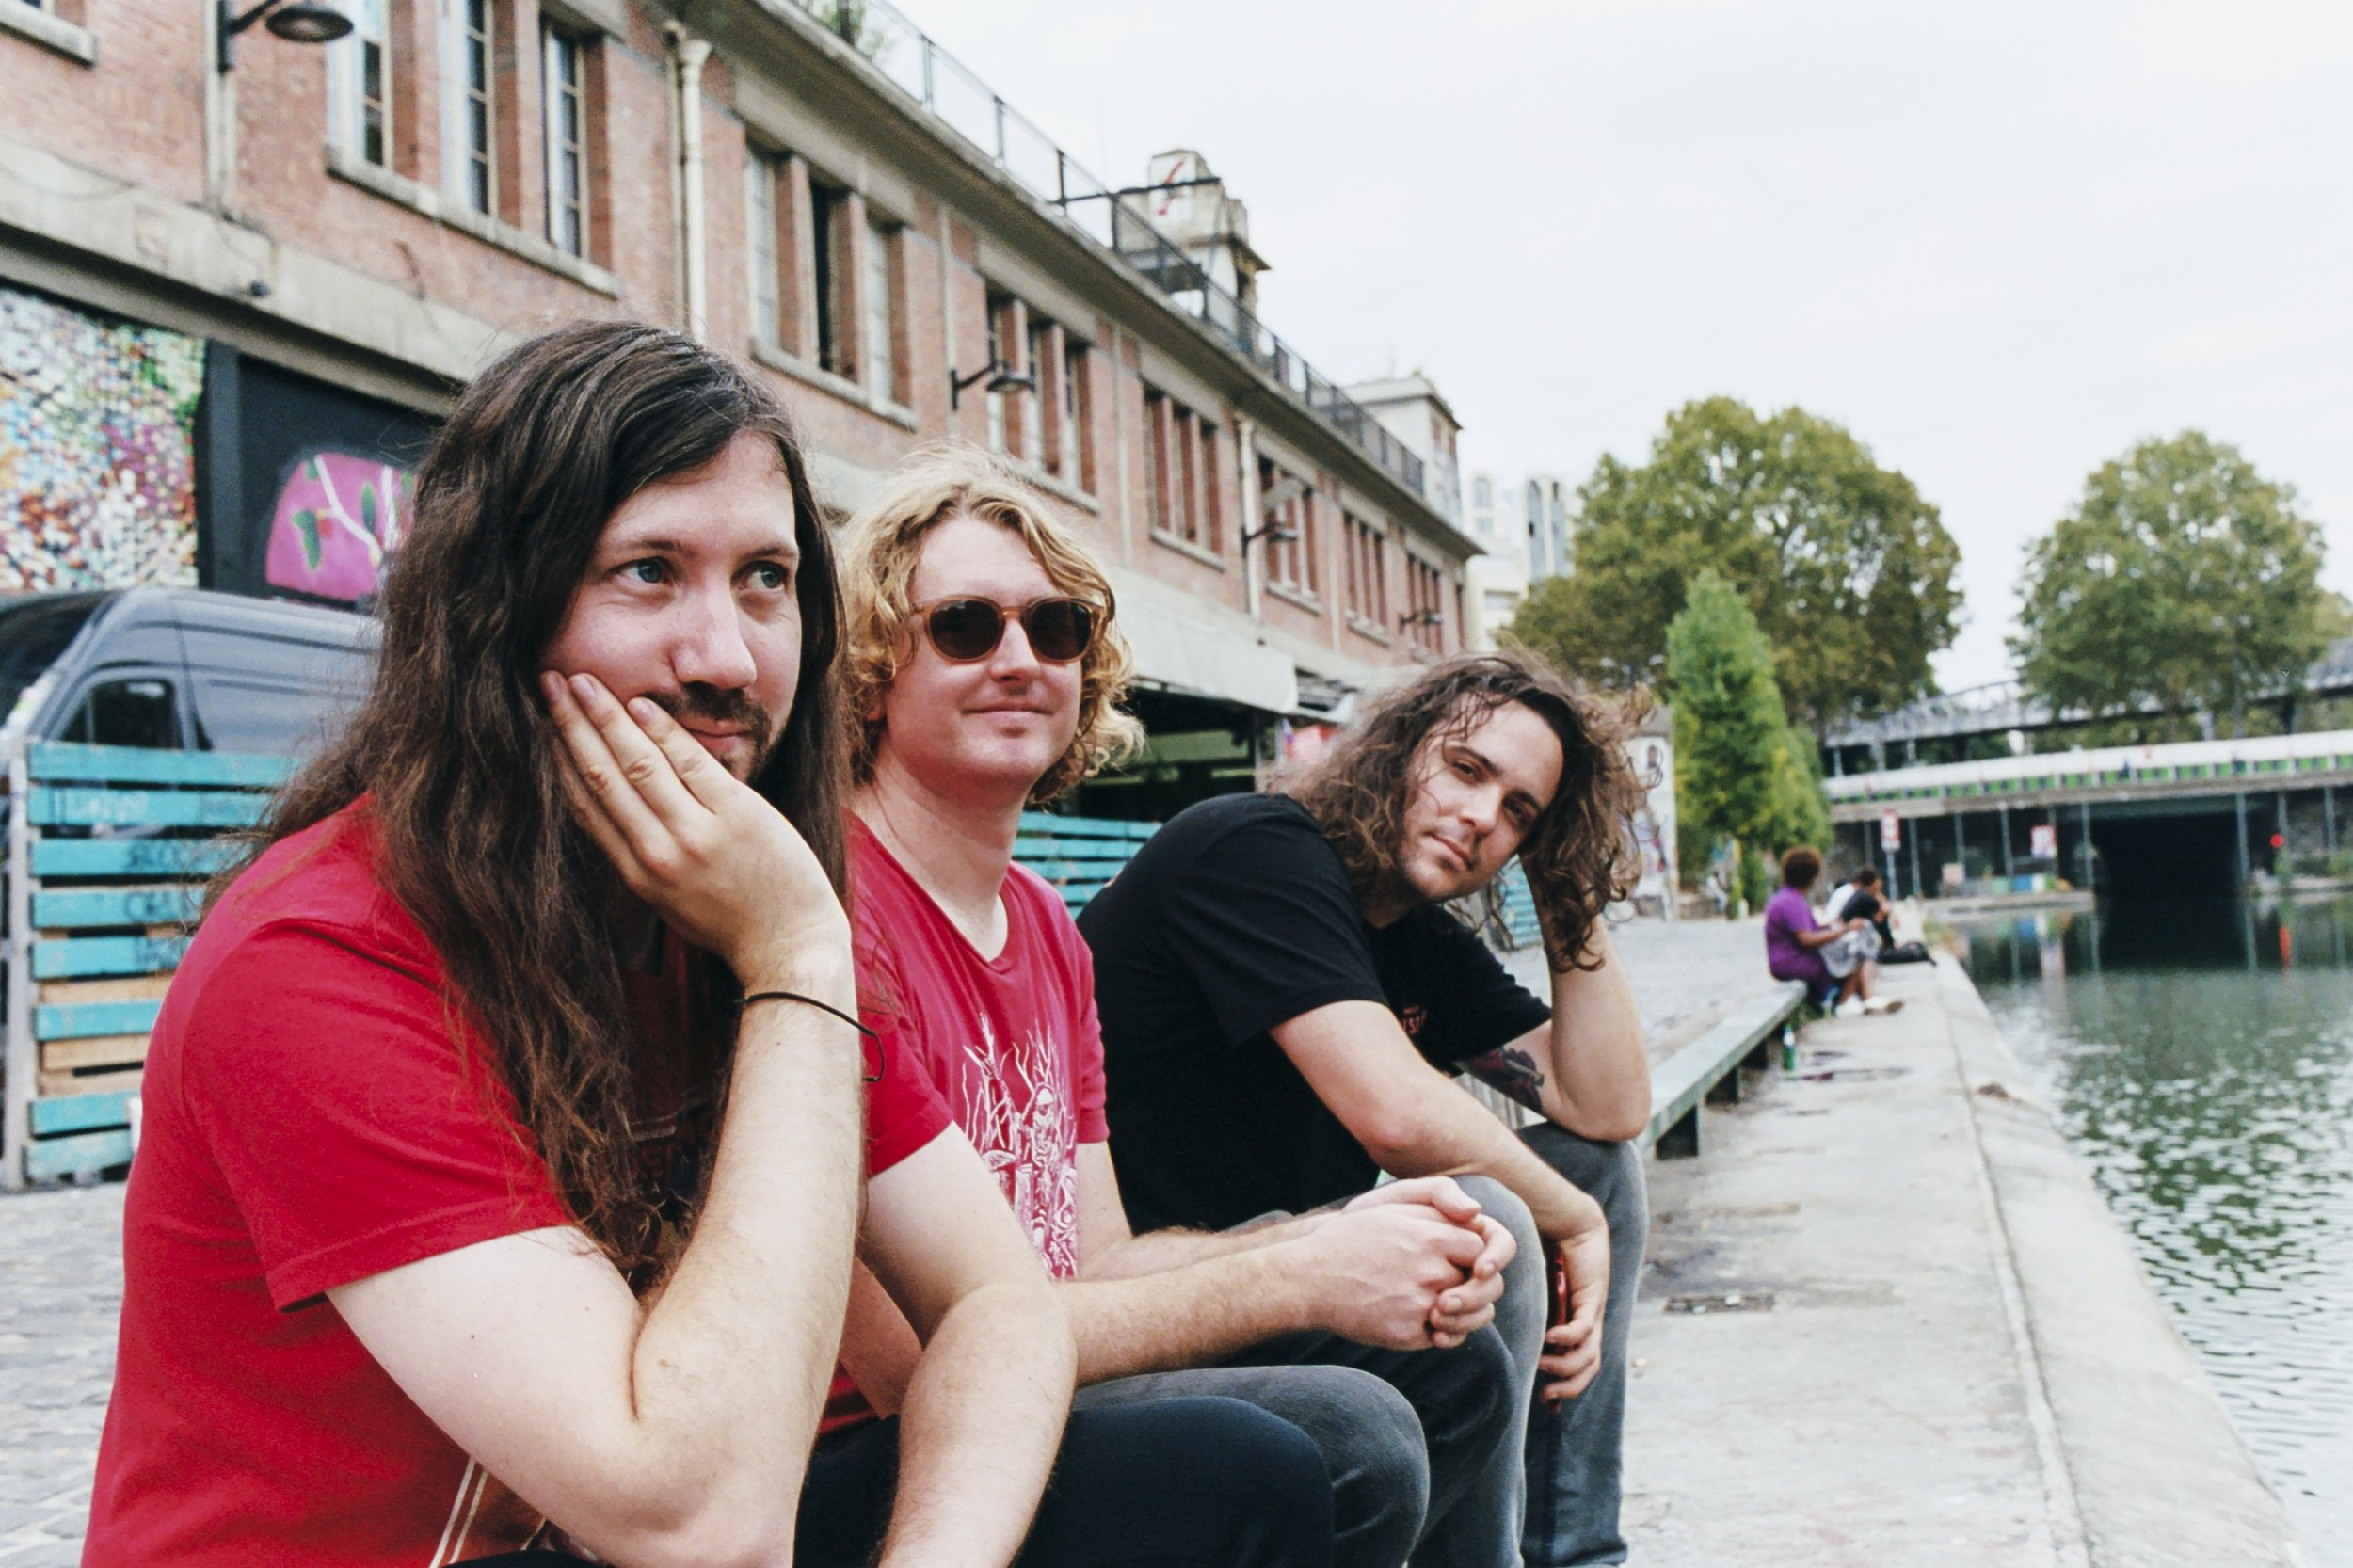 Tour With The Lot Press Photo.jpg